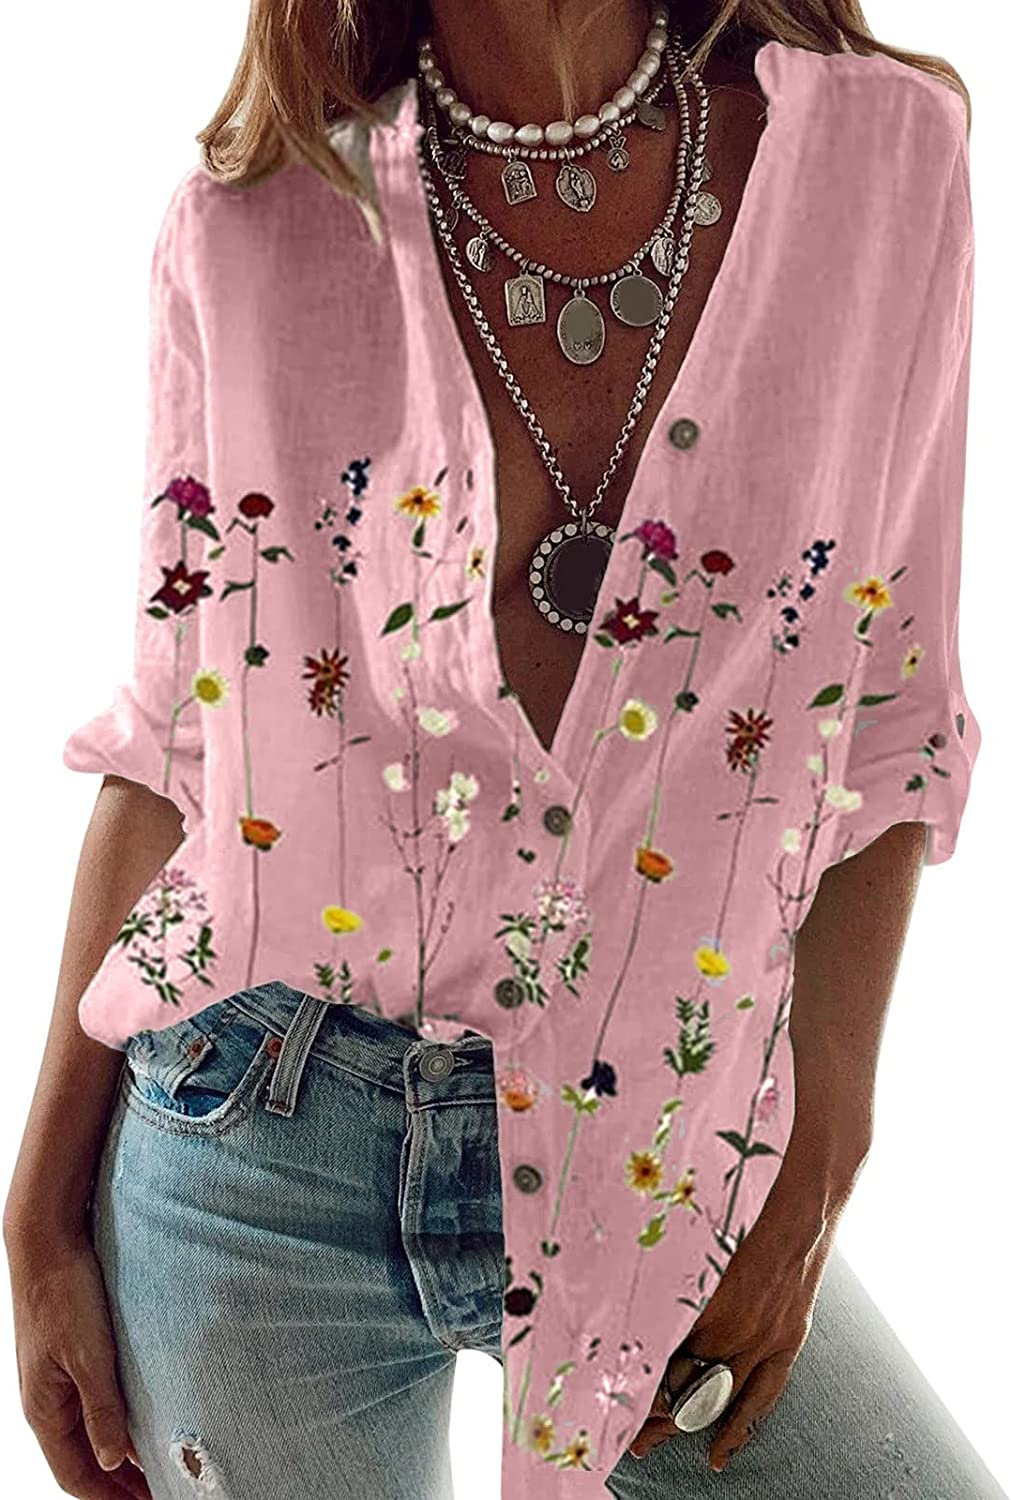 VEKDONE Women Button Down Shirts Sexy V Neck Floral Roll up Sleeve Blouses Casual Fashion Work Long Sleeve Shirts Tops